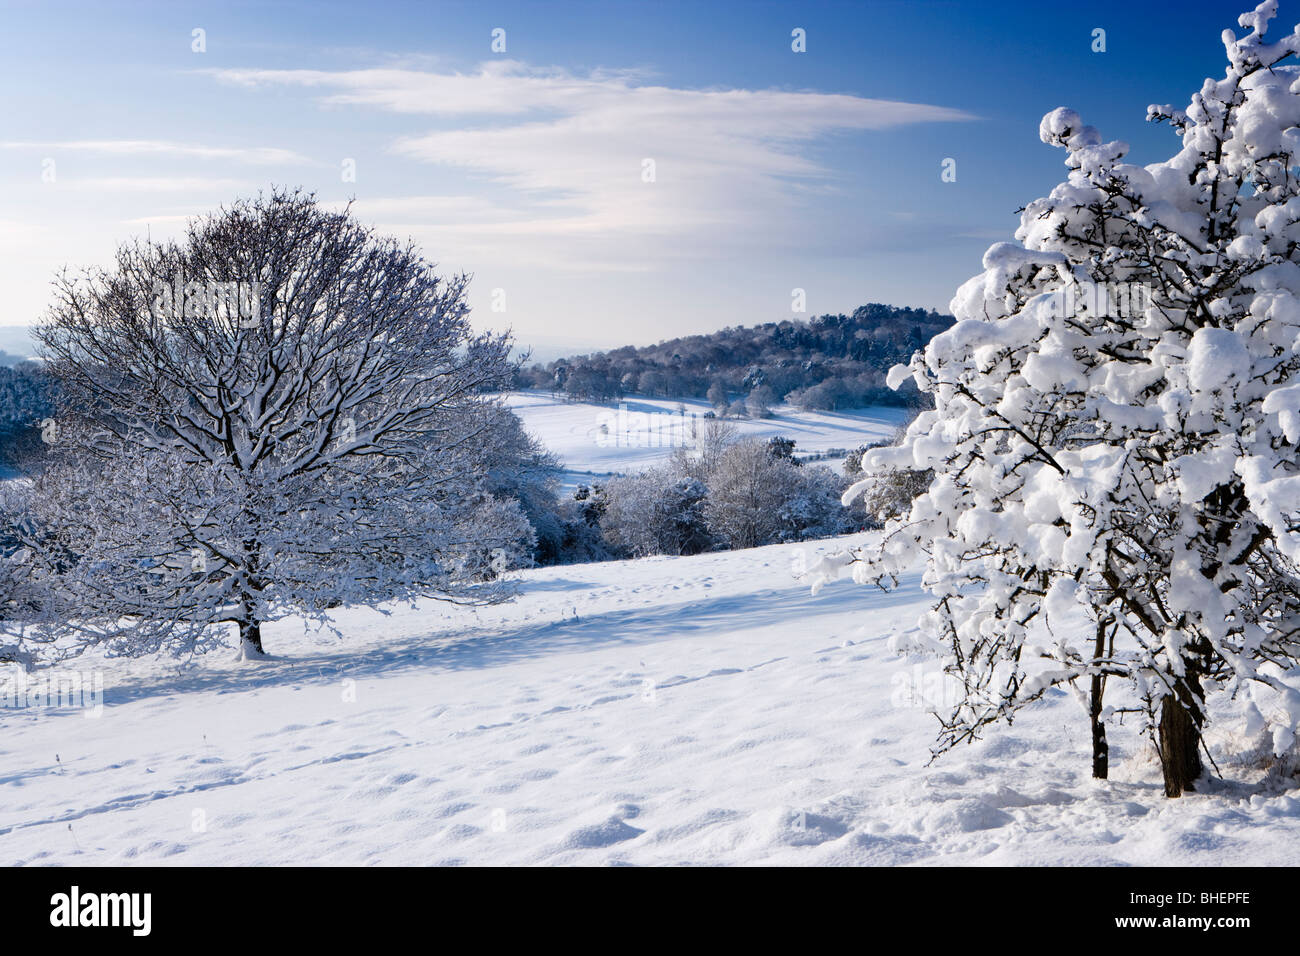 Winter at Newlands Corner near Guildford, Surrey, UK. - Stock Image